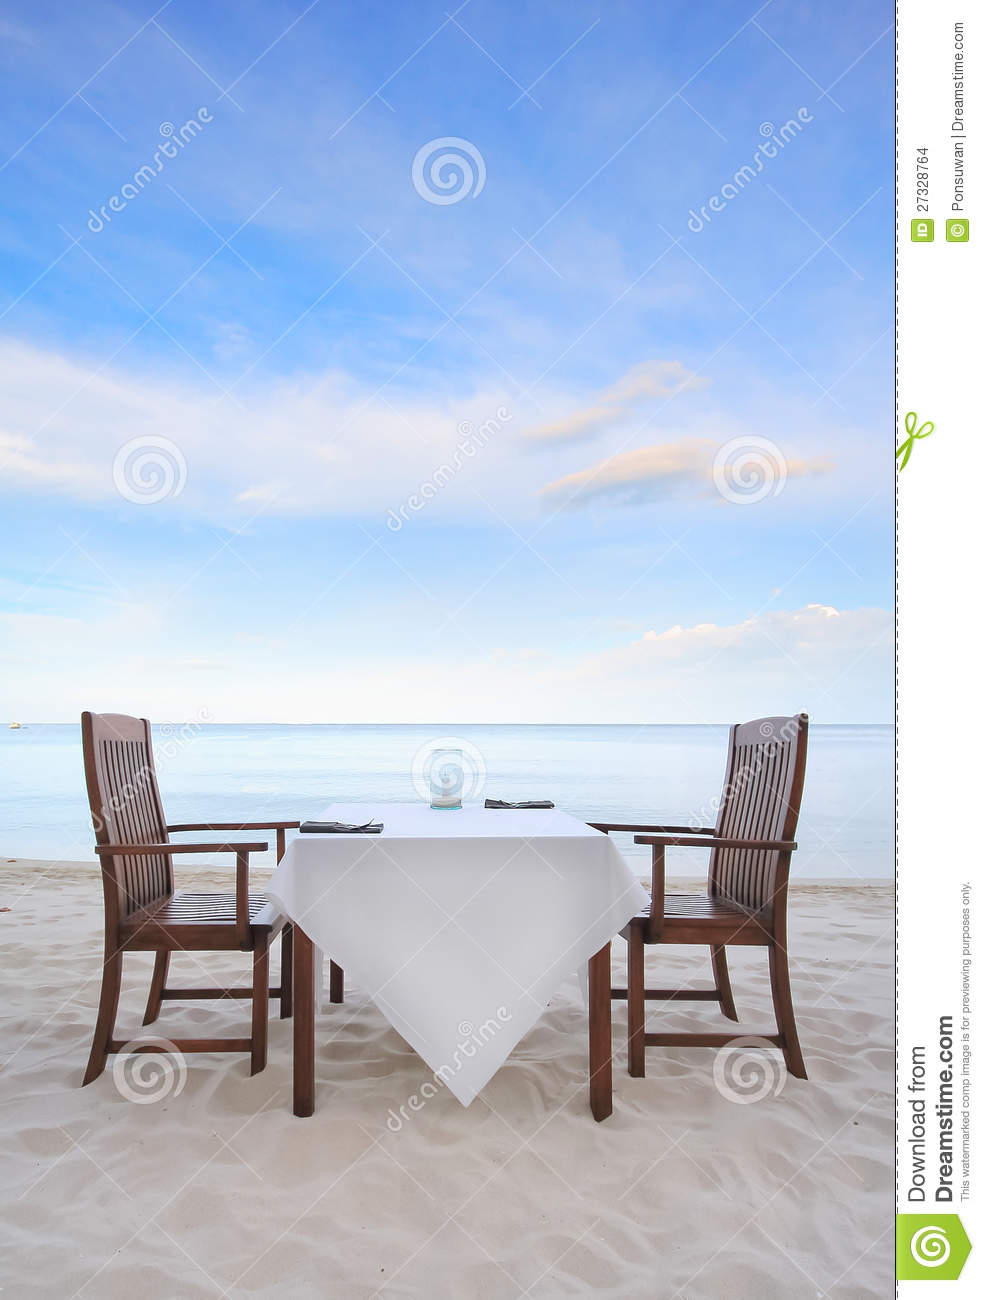 Dining table on the beach stock images image 27328764 for Beach dining table